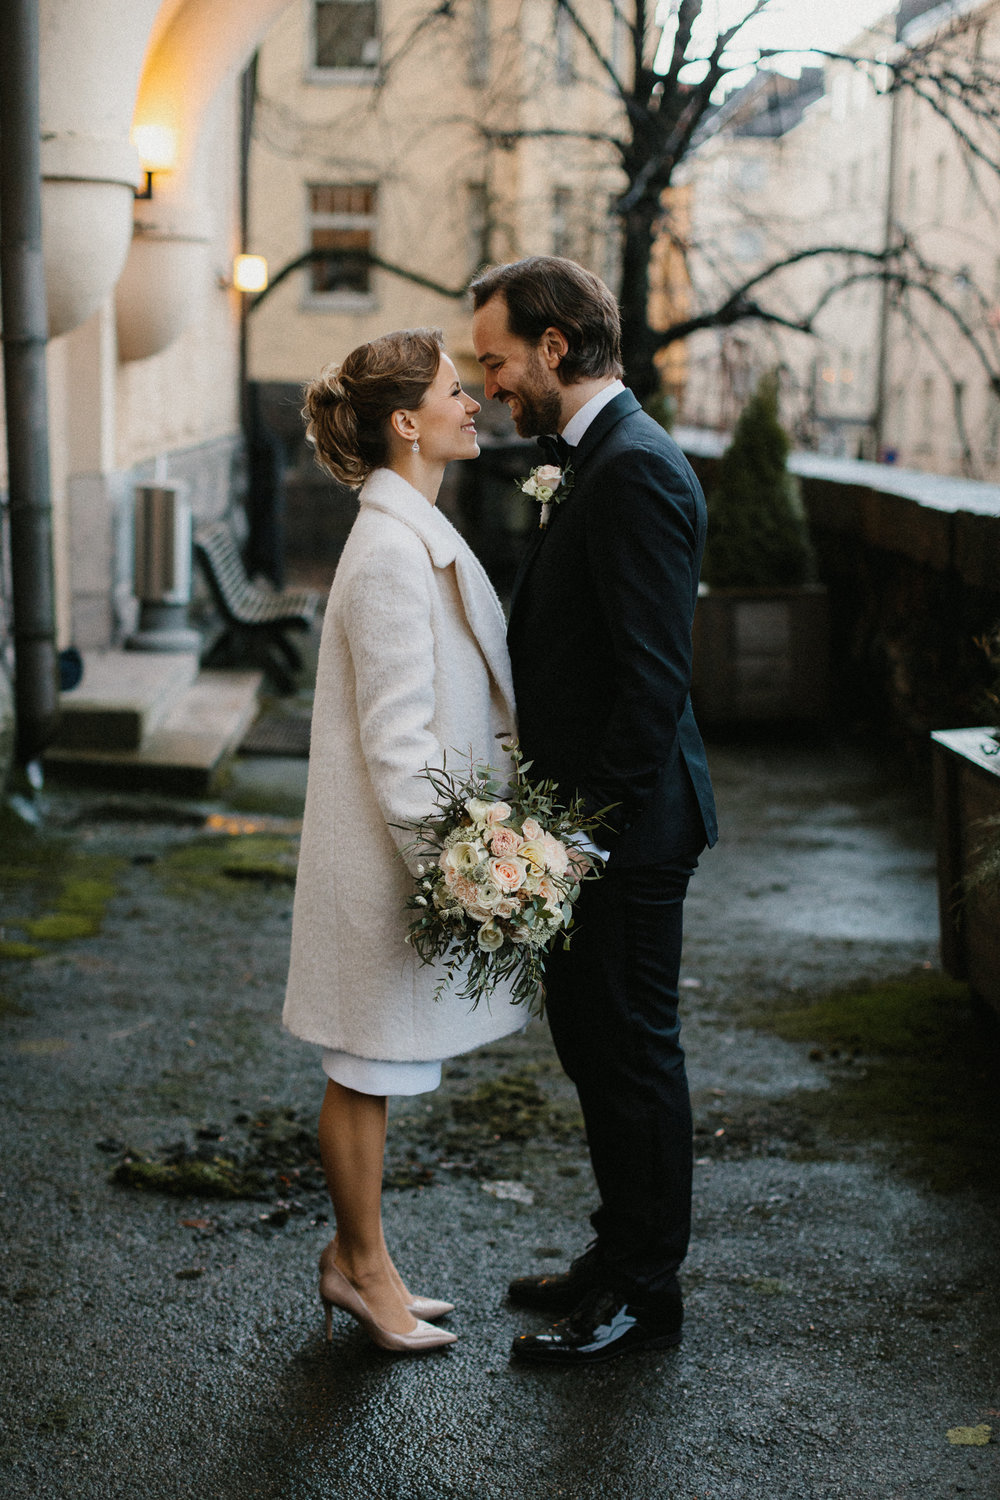 Maria + Topi | Photo by Patrick Karkkolainen Wedding Photographer | Helsinki Wedding Photographer-28.jpg